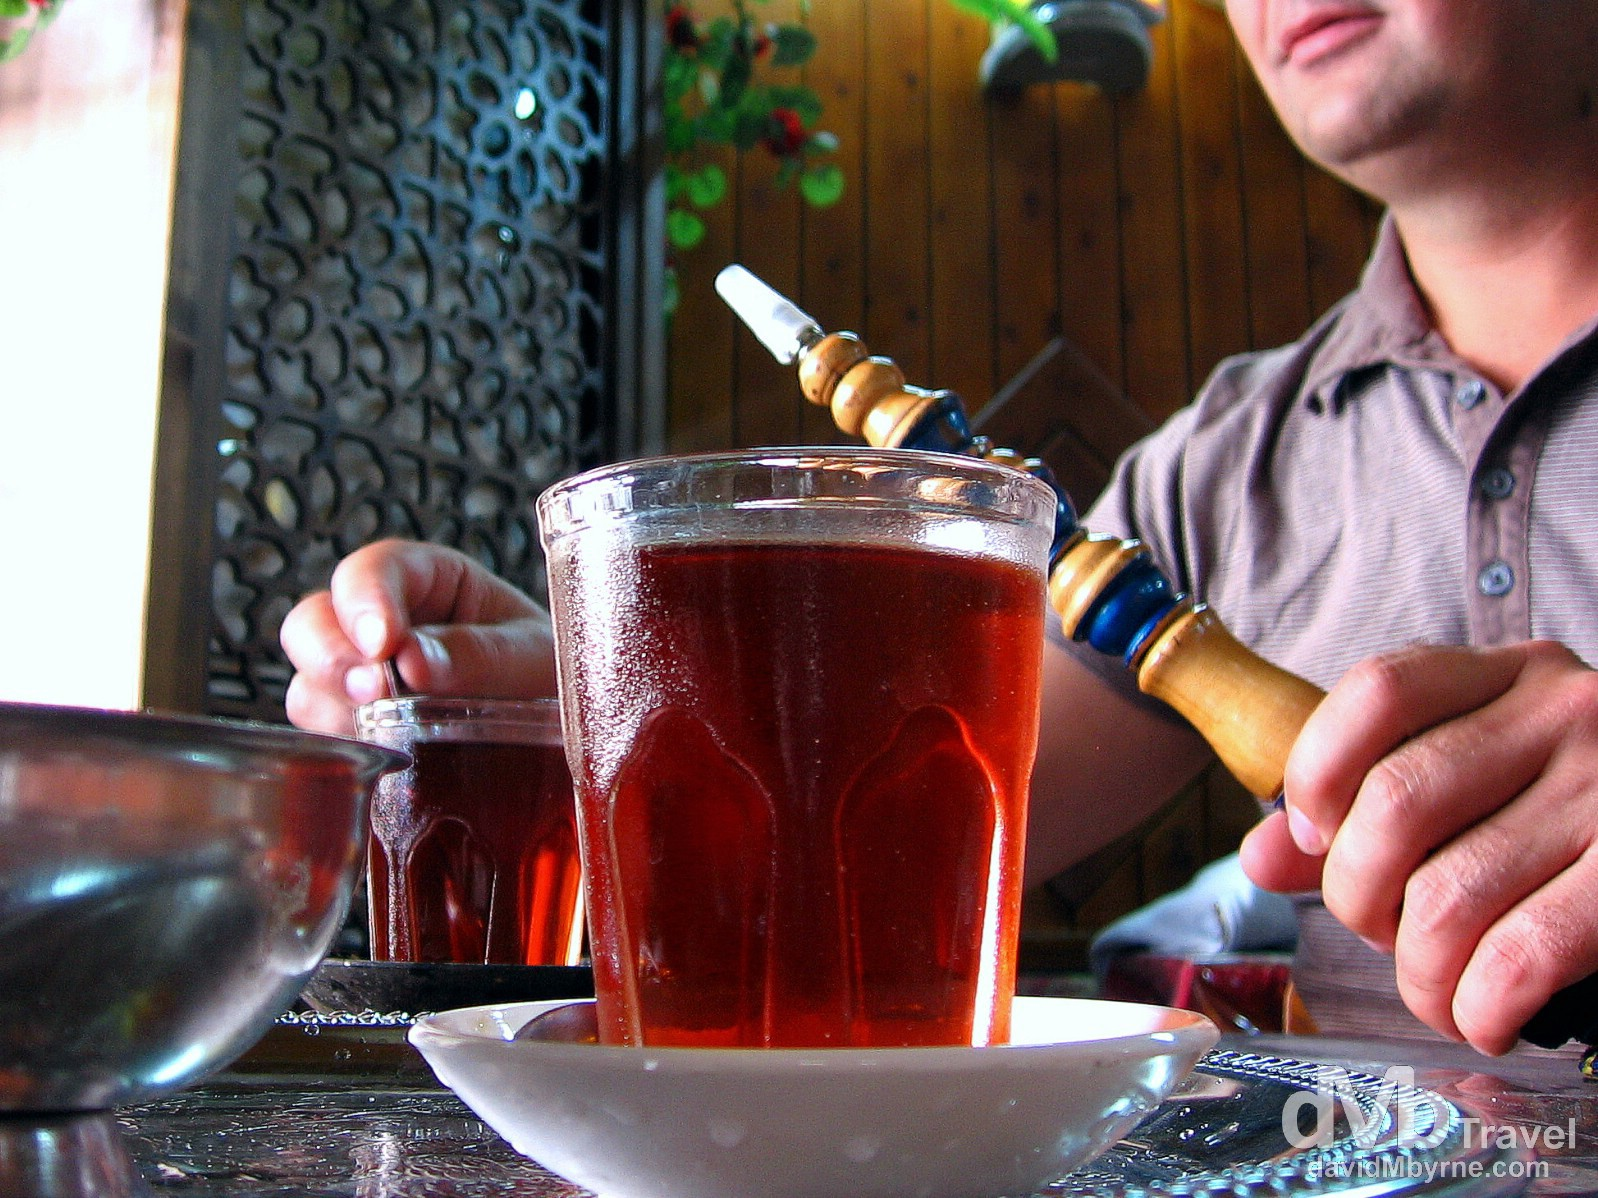 Tea & sheesha/hookah in a cafe in Damascus, Syria. May 4, 2008.